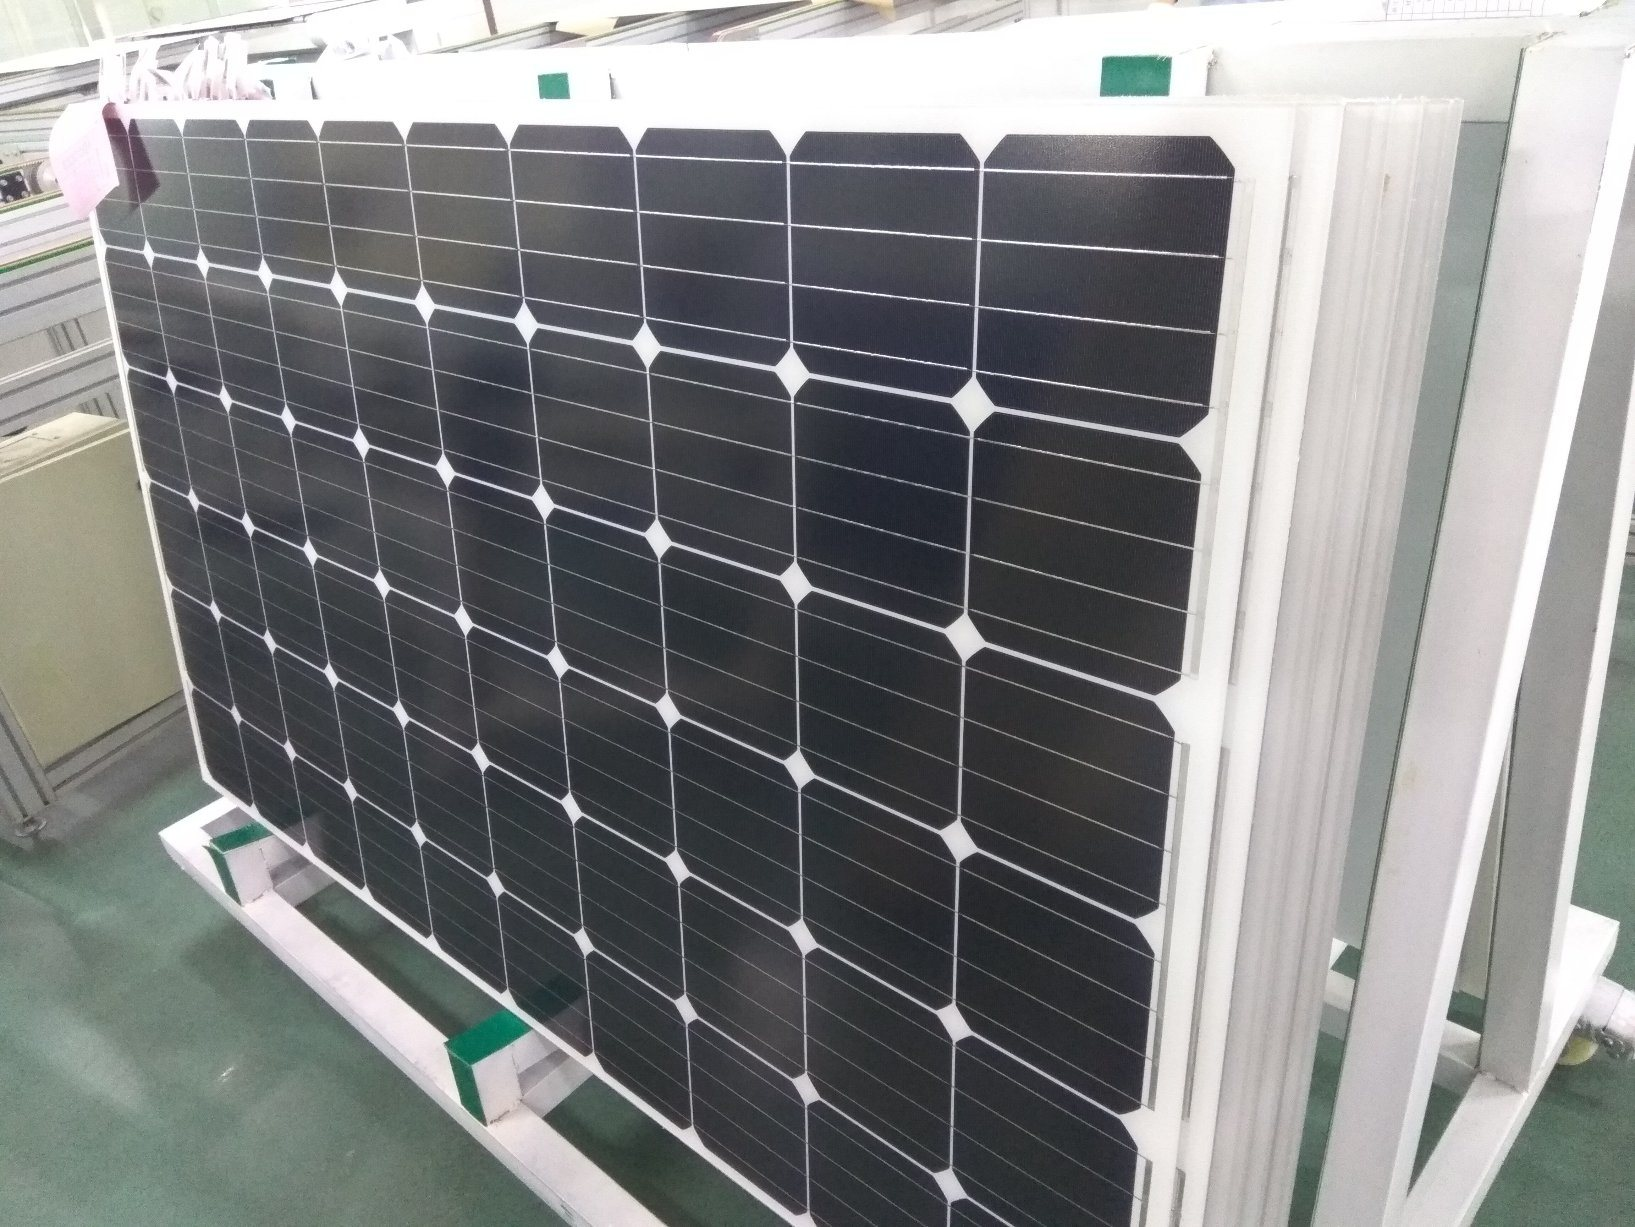 Salt Mist Resistant 270W Monocrystalline Silicon Solar Module for Rooftop PV Projects